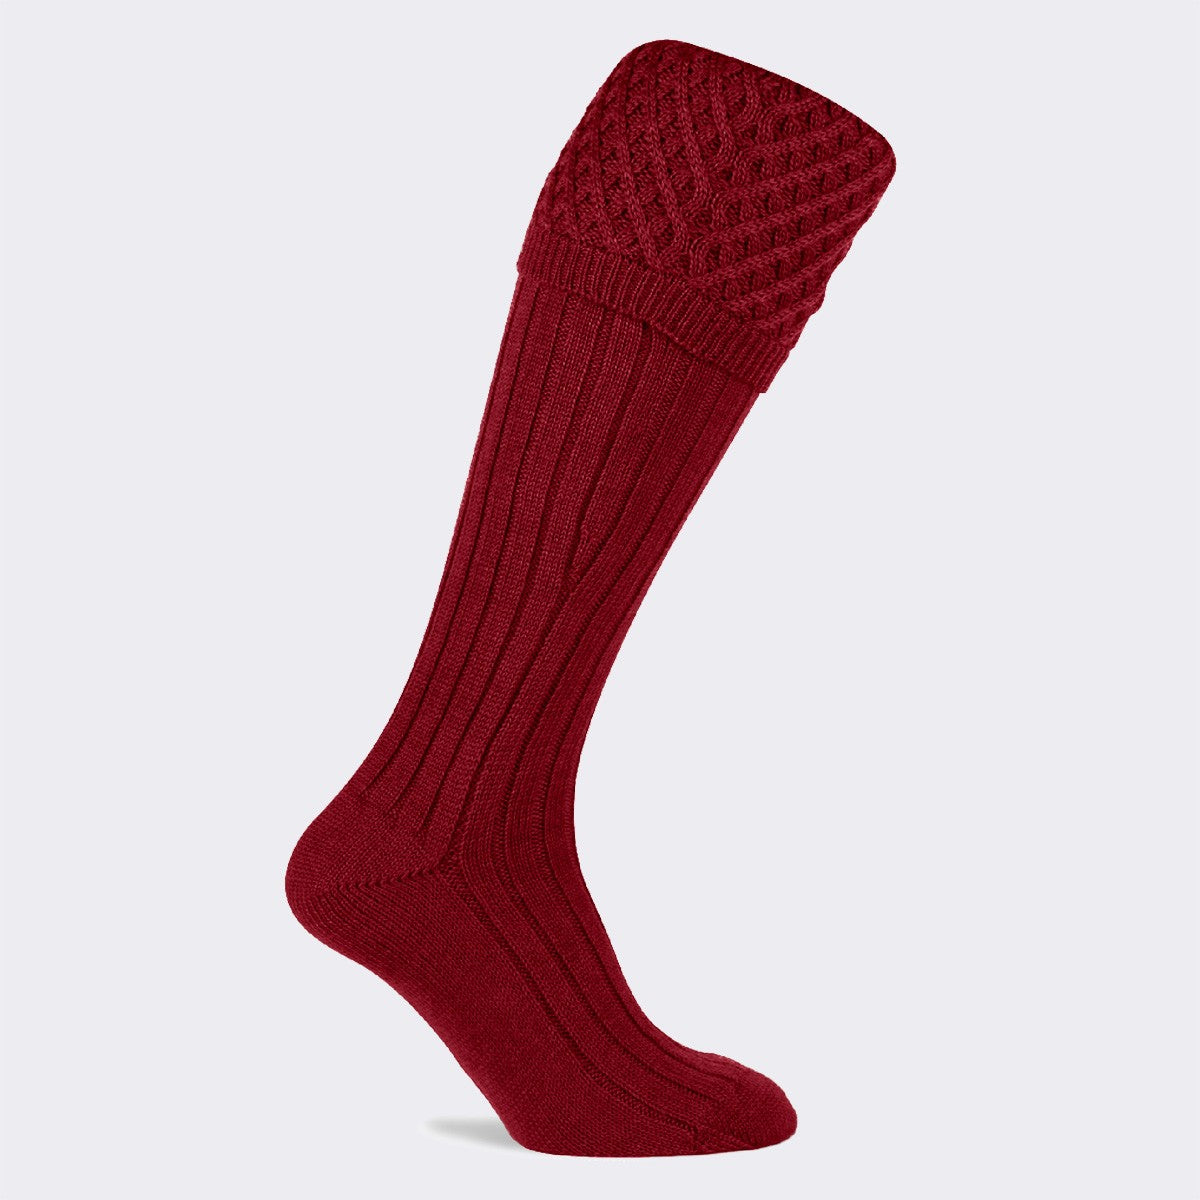 Pennine The Chelsea Shooting Sock for Men in Deep Red